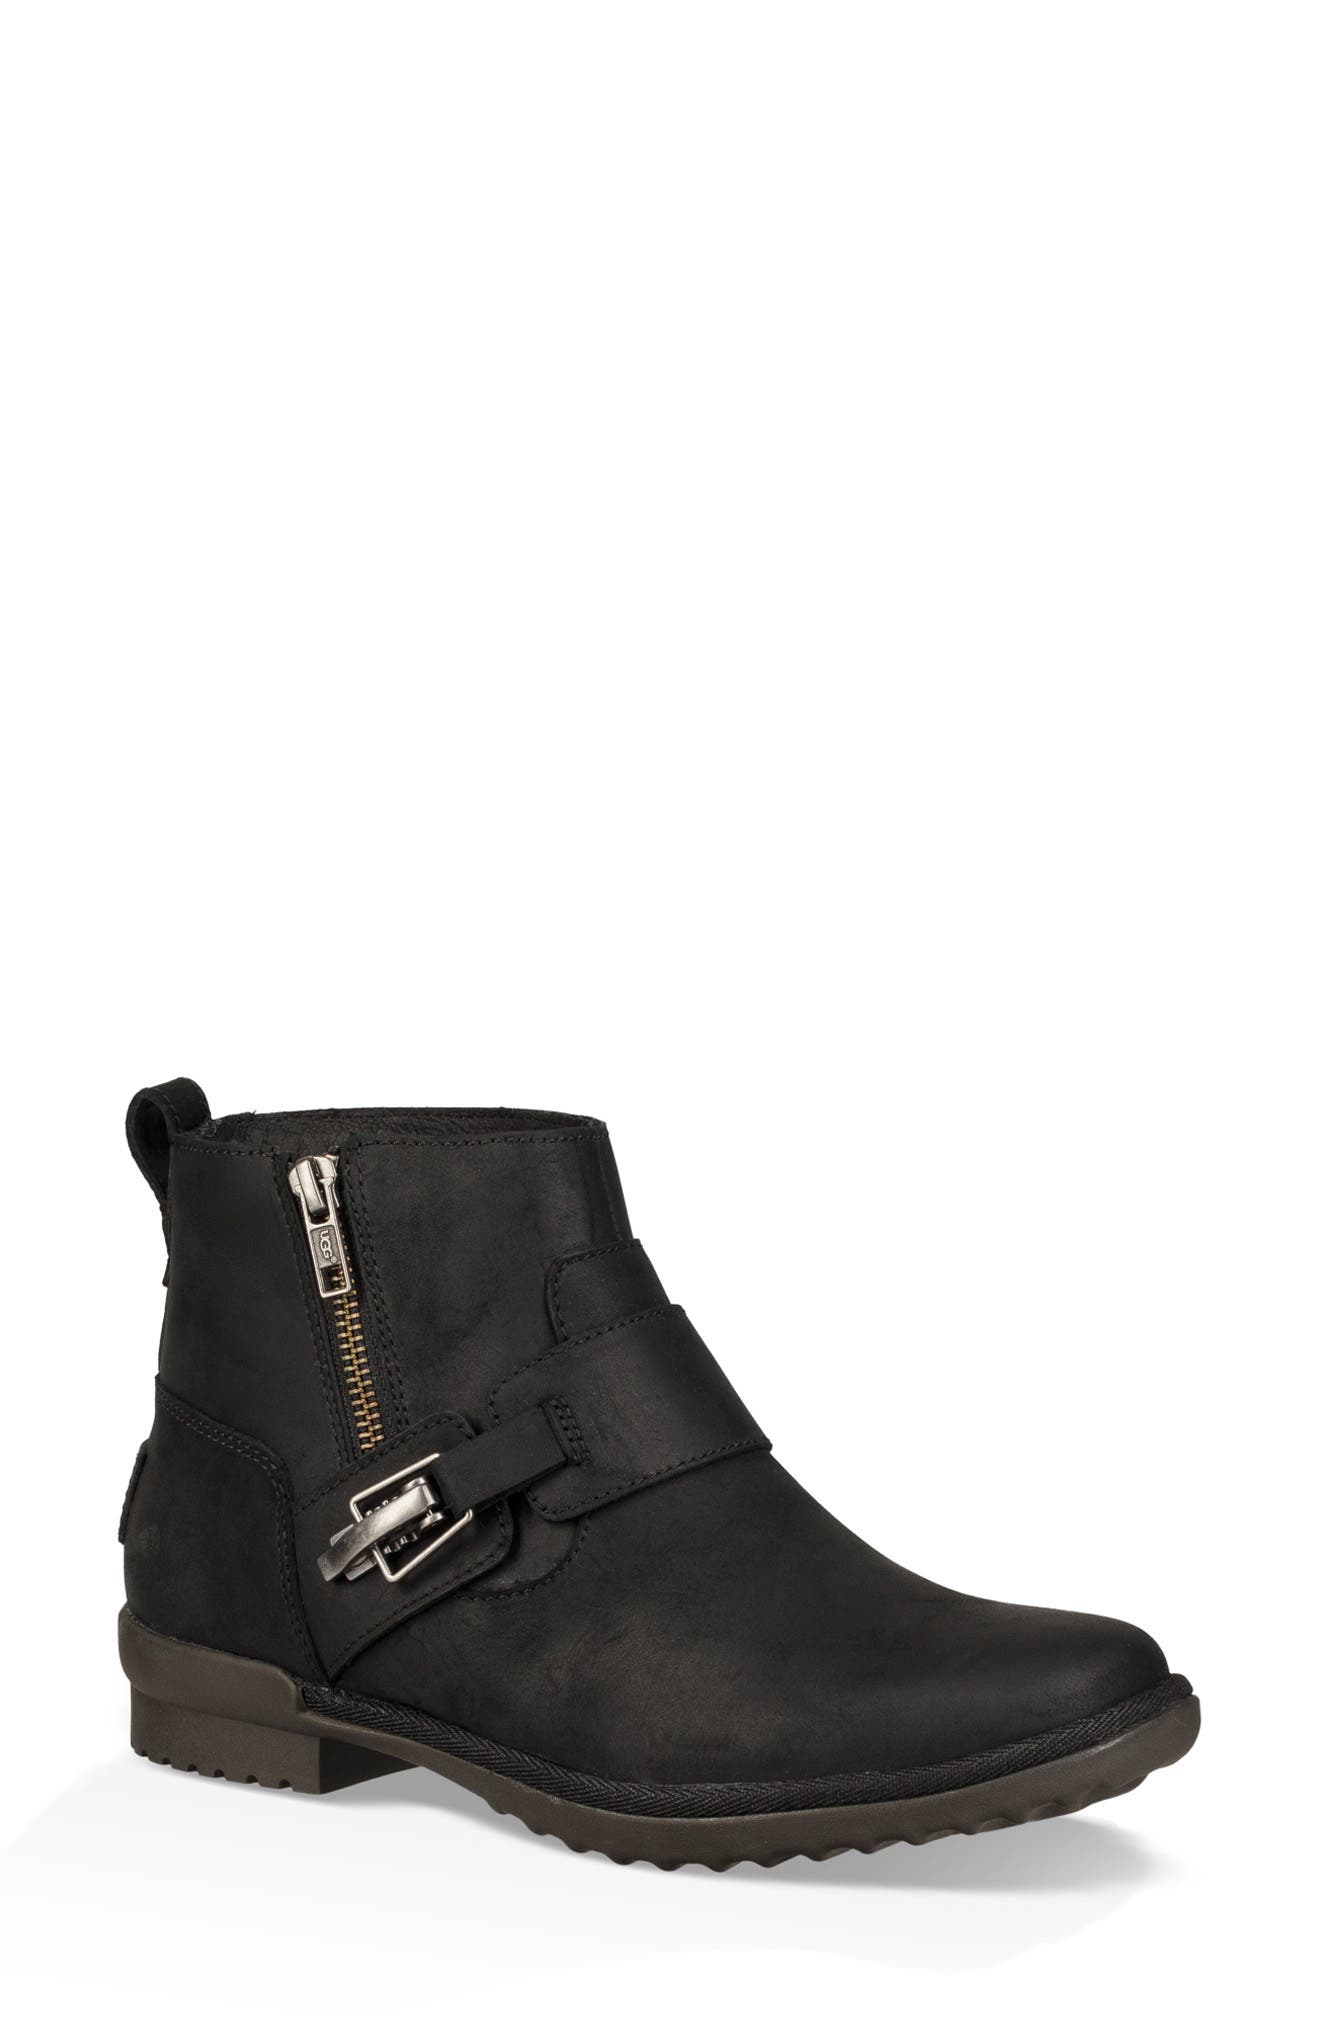 Cheyne Bootie,                         Main,                         color, BLACK LEATHER